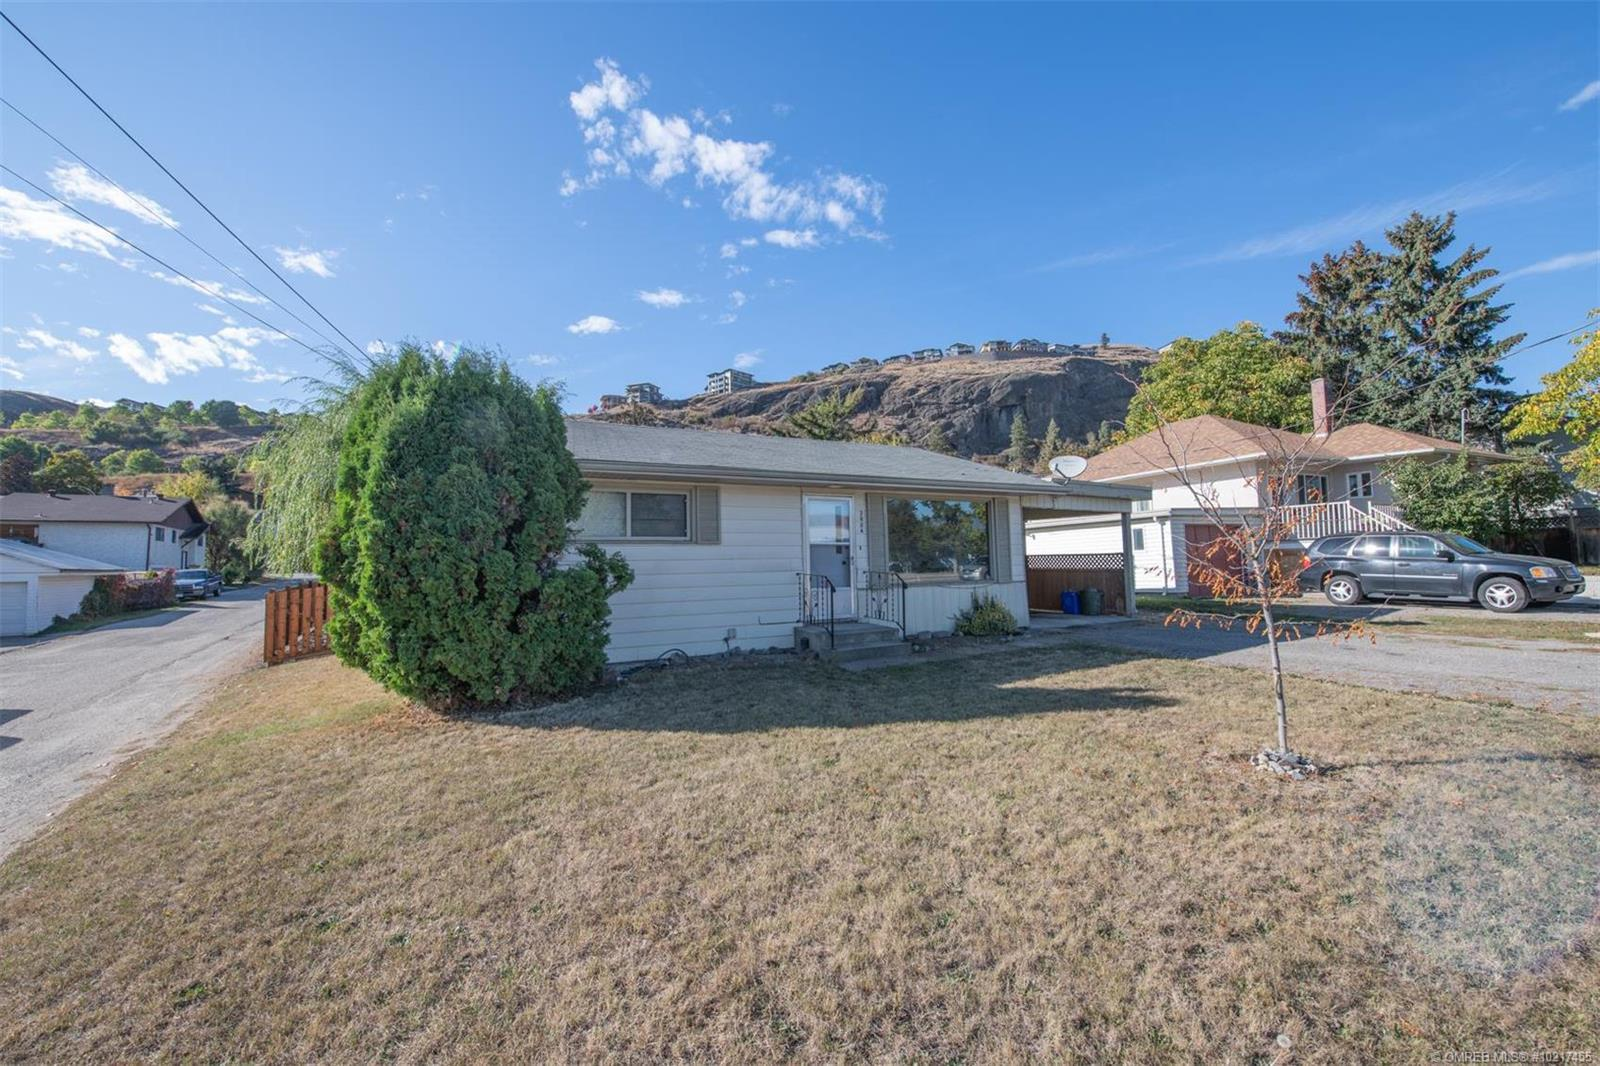 Listing 10217455 - Thumbmnail Photo # 32